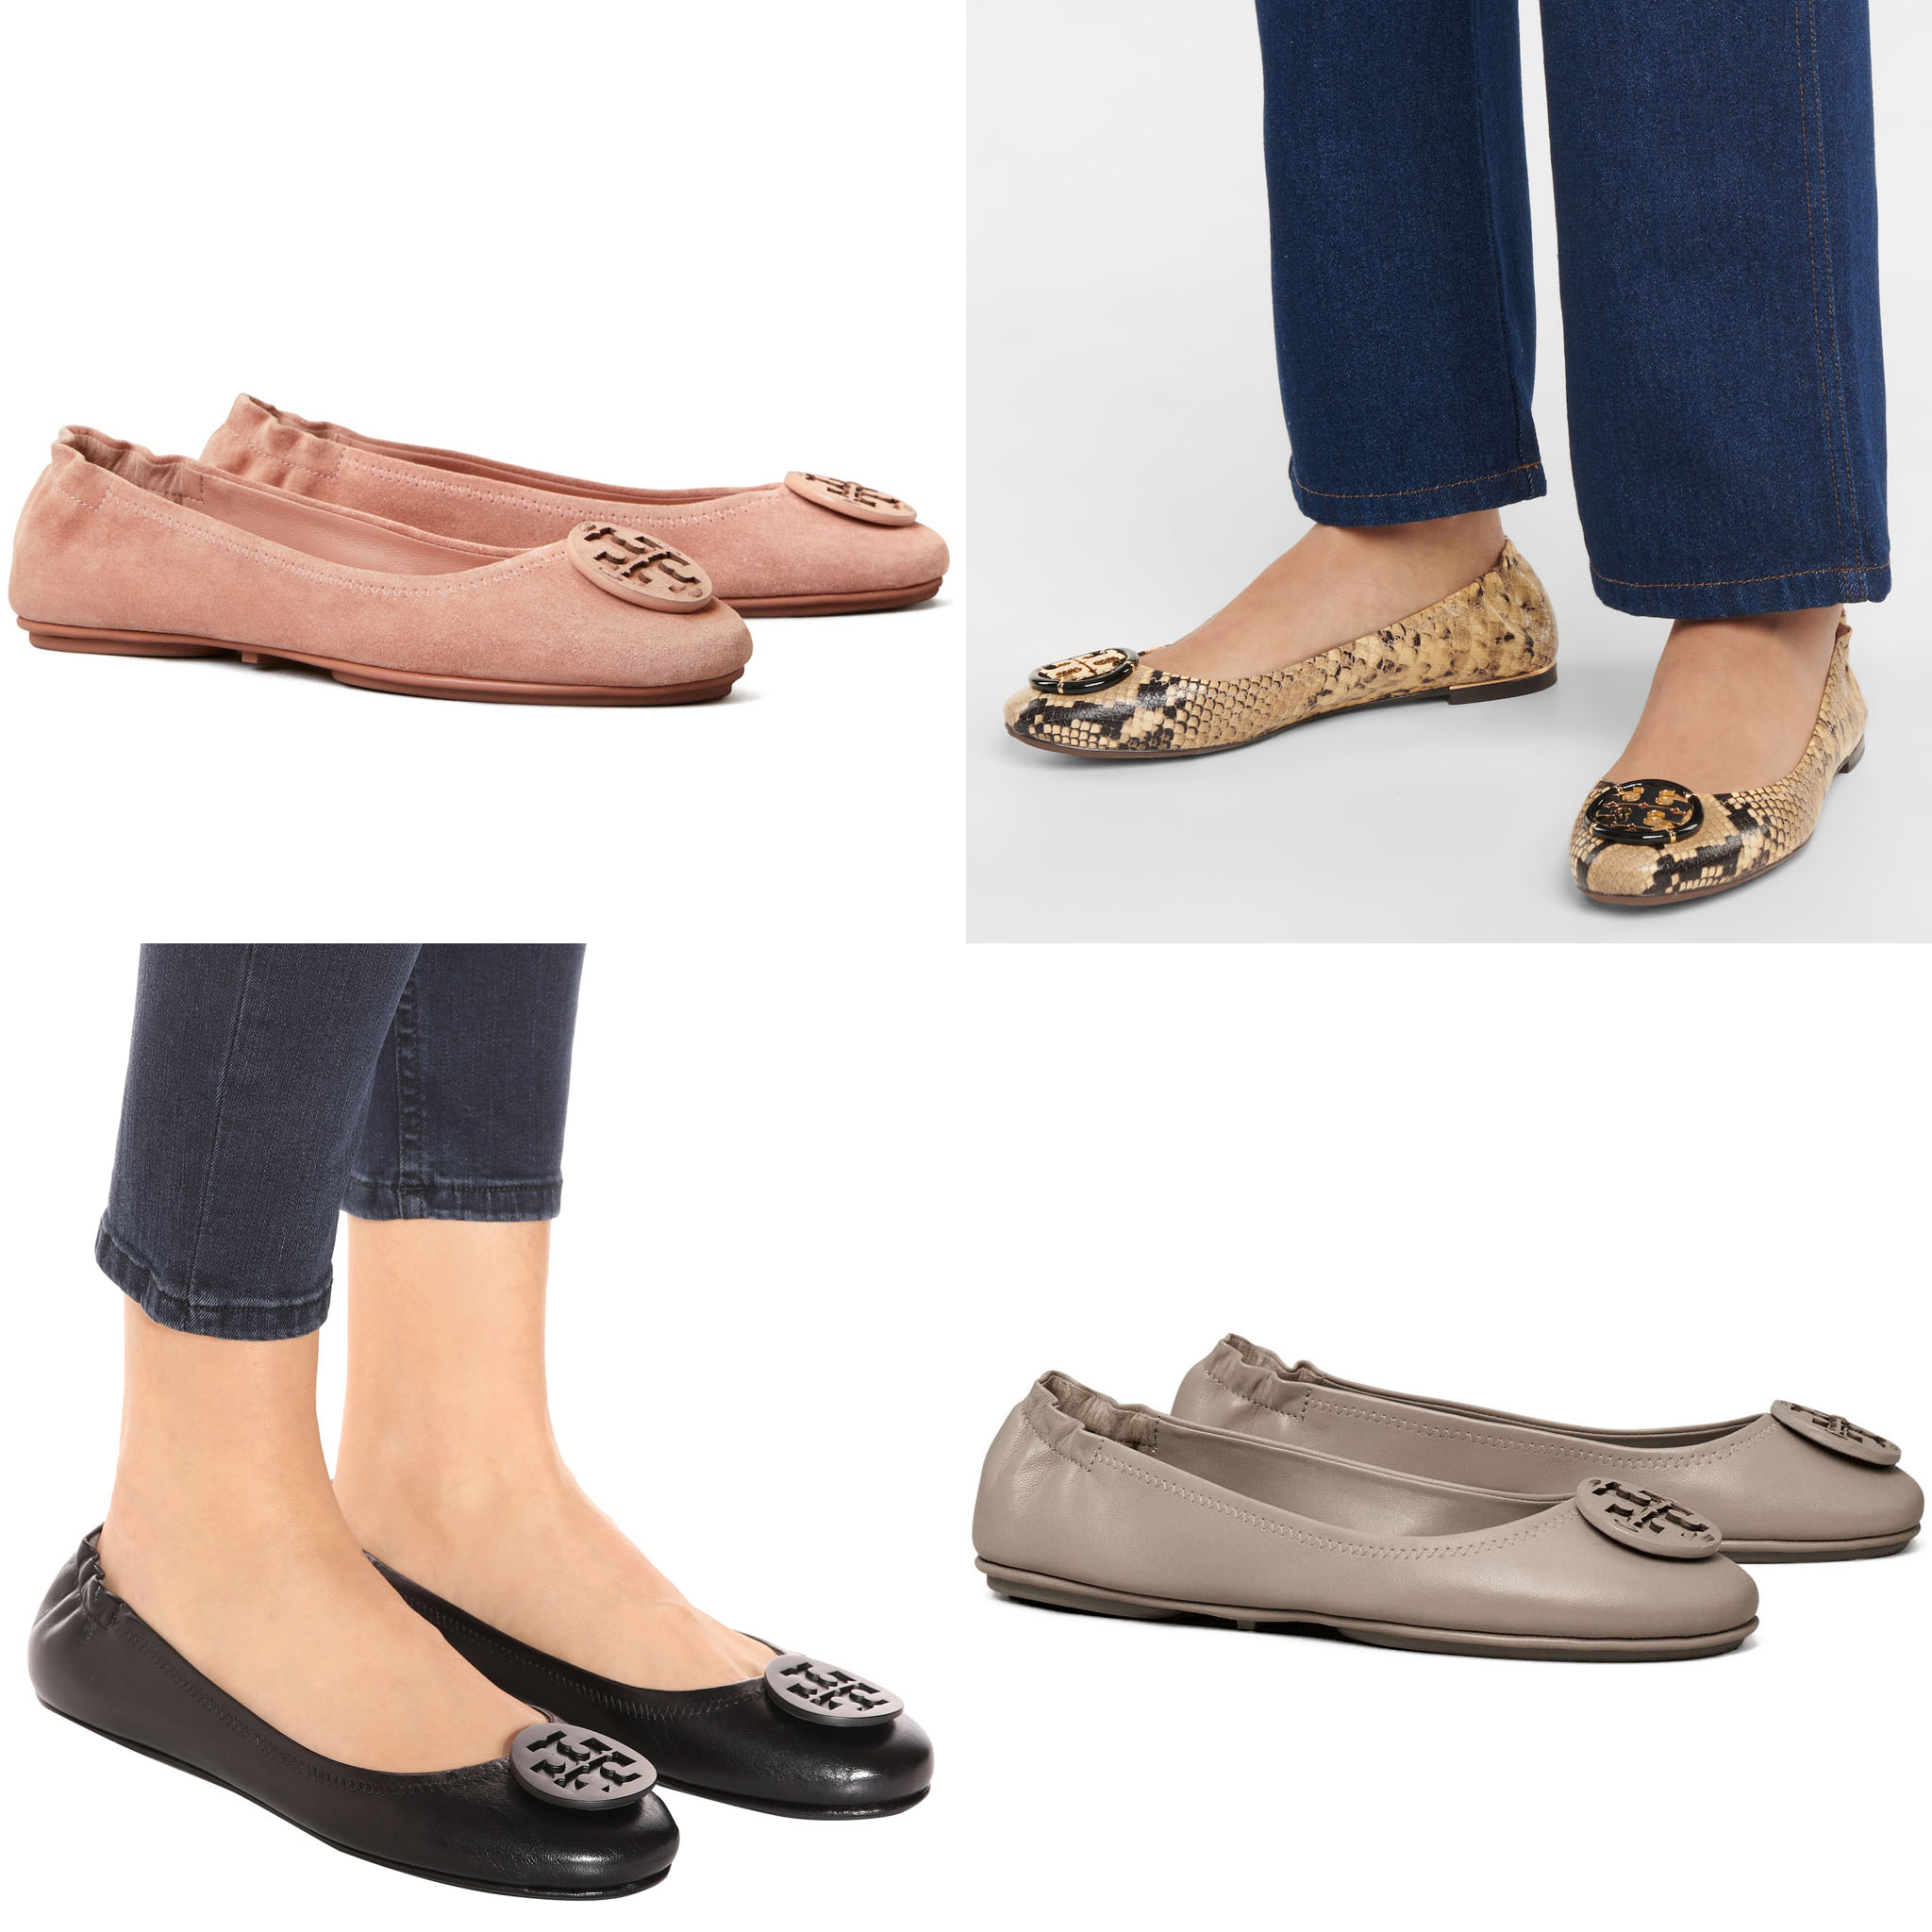 A perfect marriage between laid-back luxe and polished glamour, the Minnie Travel flats are crafted from soft lambskin leather with elasticated back for a perfect fit